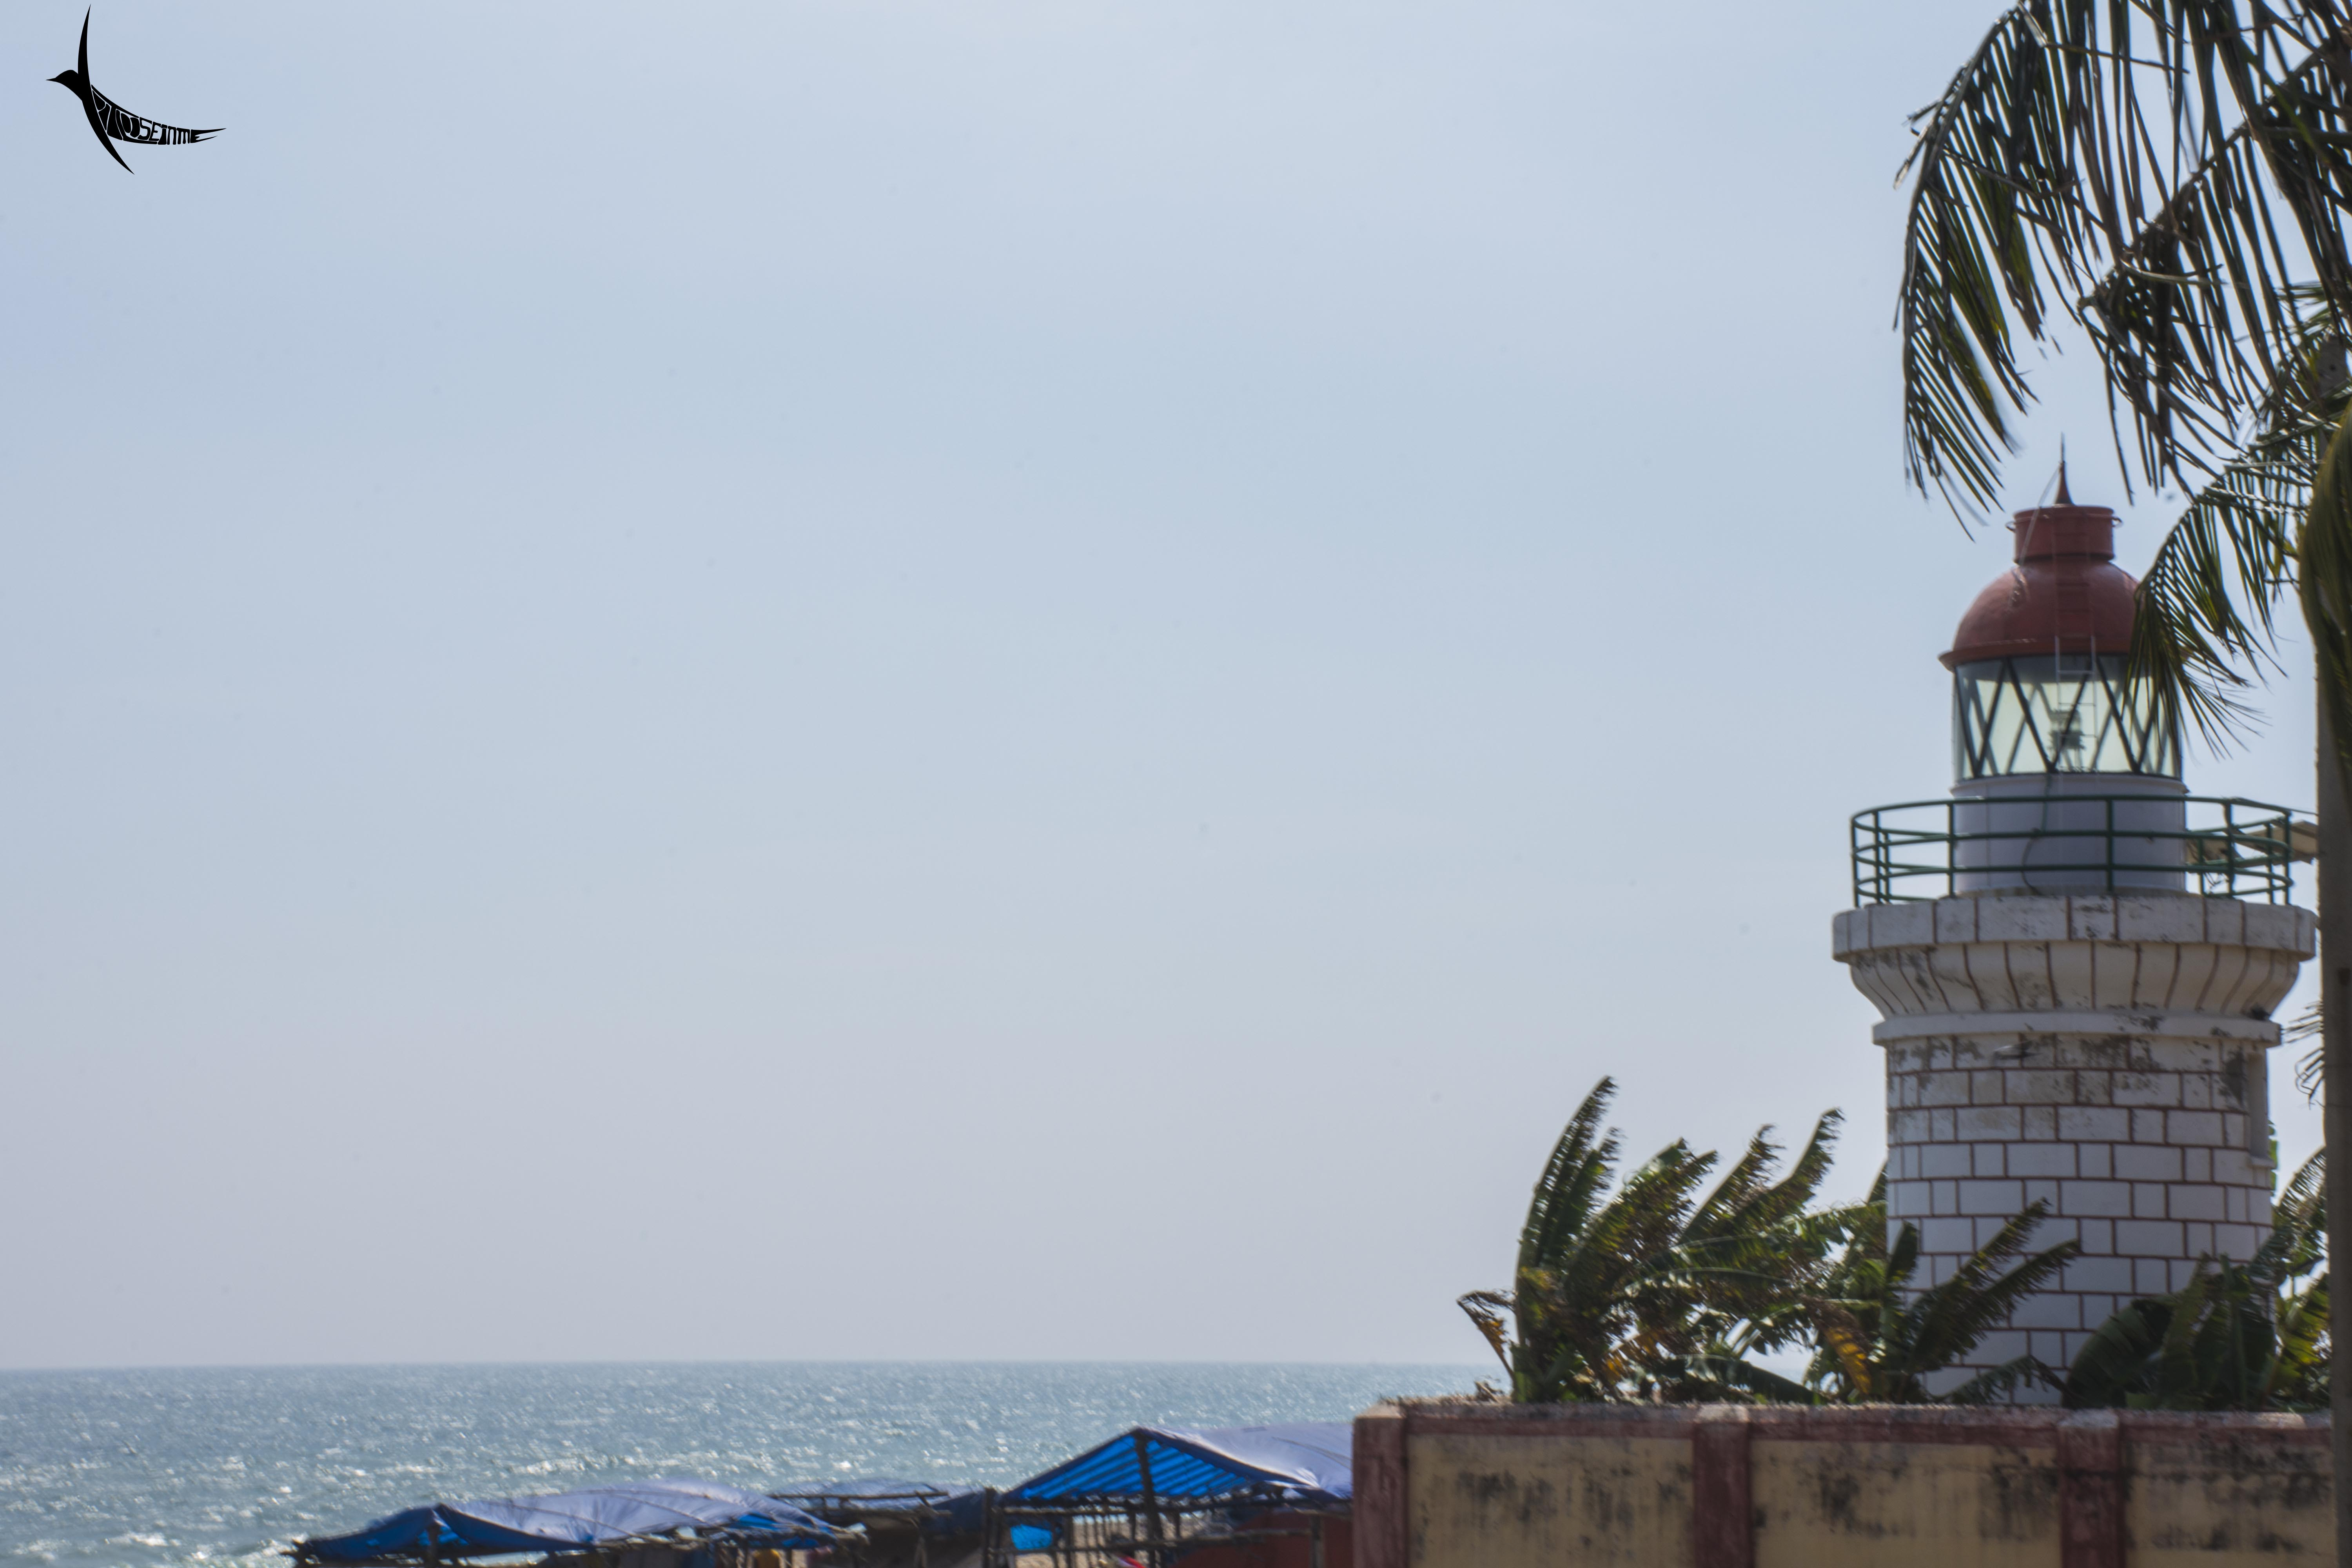 The small lighthouse in Bheemili beach